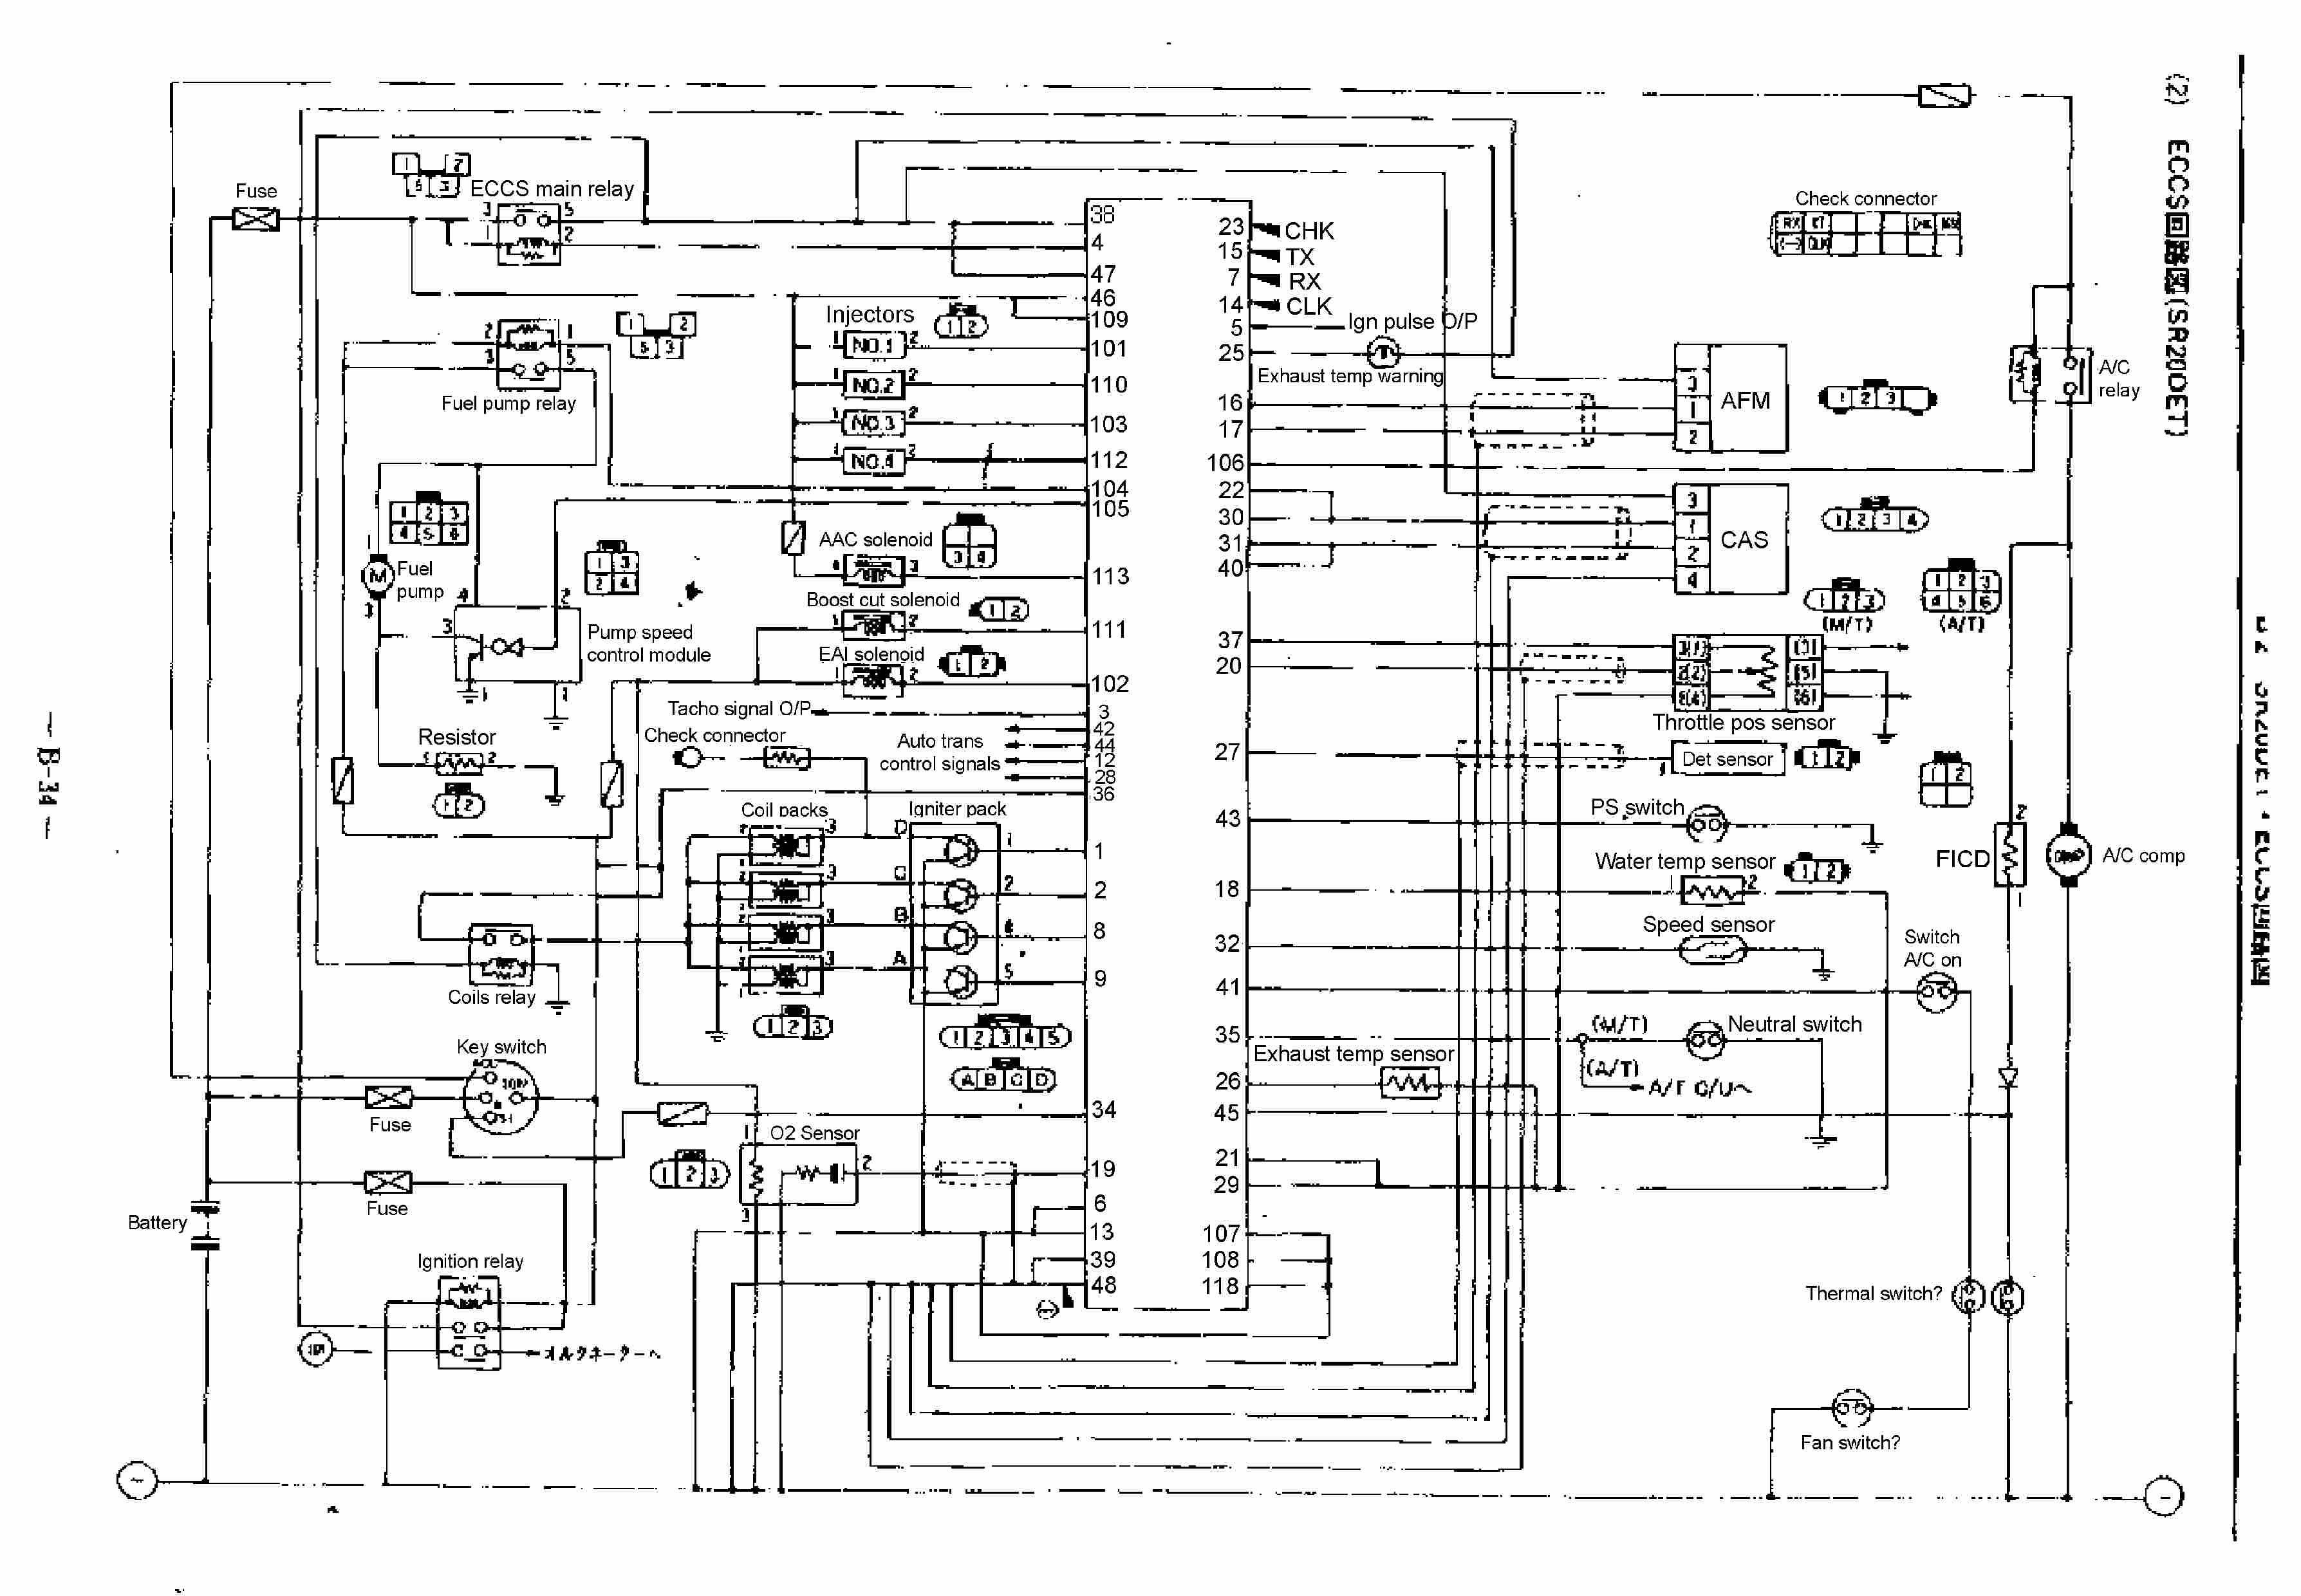 Car Labeled Diagram Wiring Diagram In A Car New Jaguar Alternator Wiring Diagram Fresh Of Car Labeled Diagram